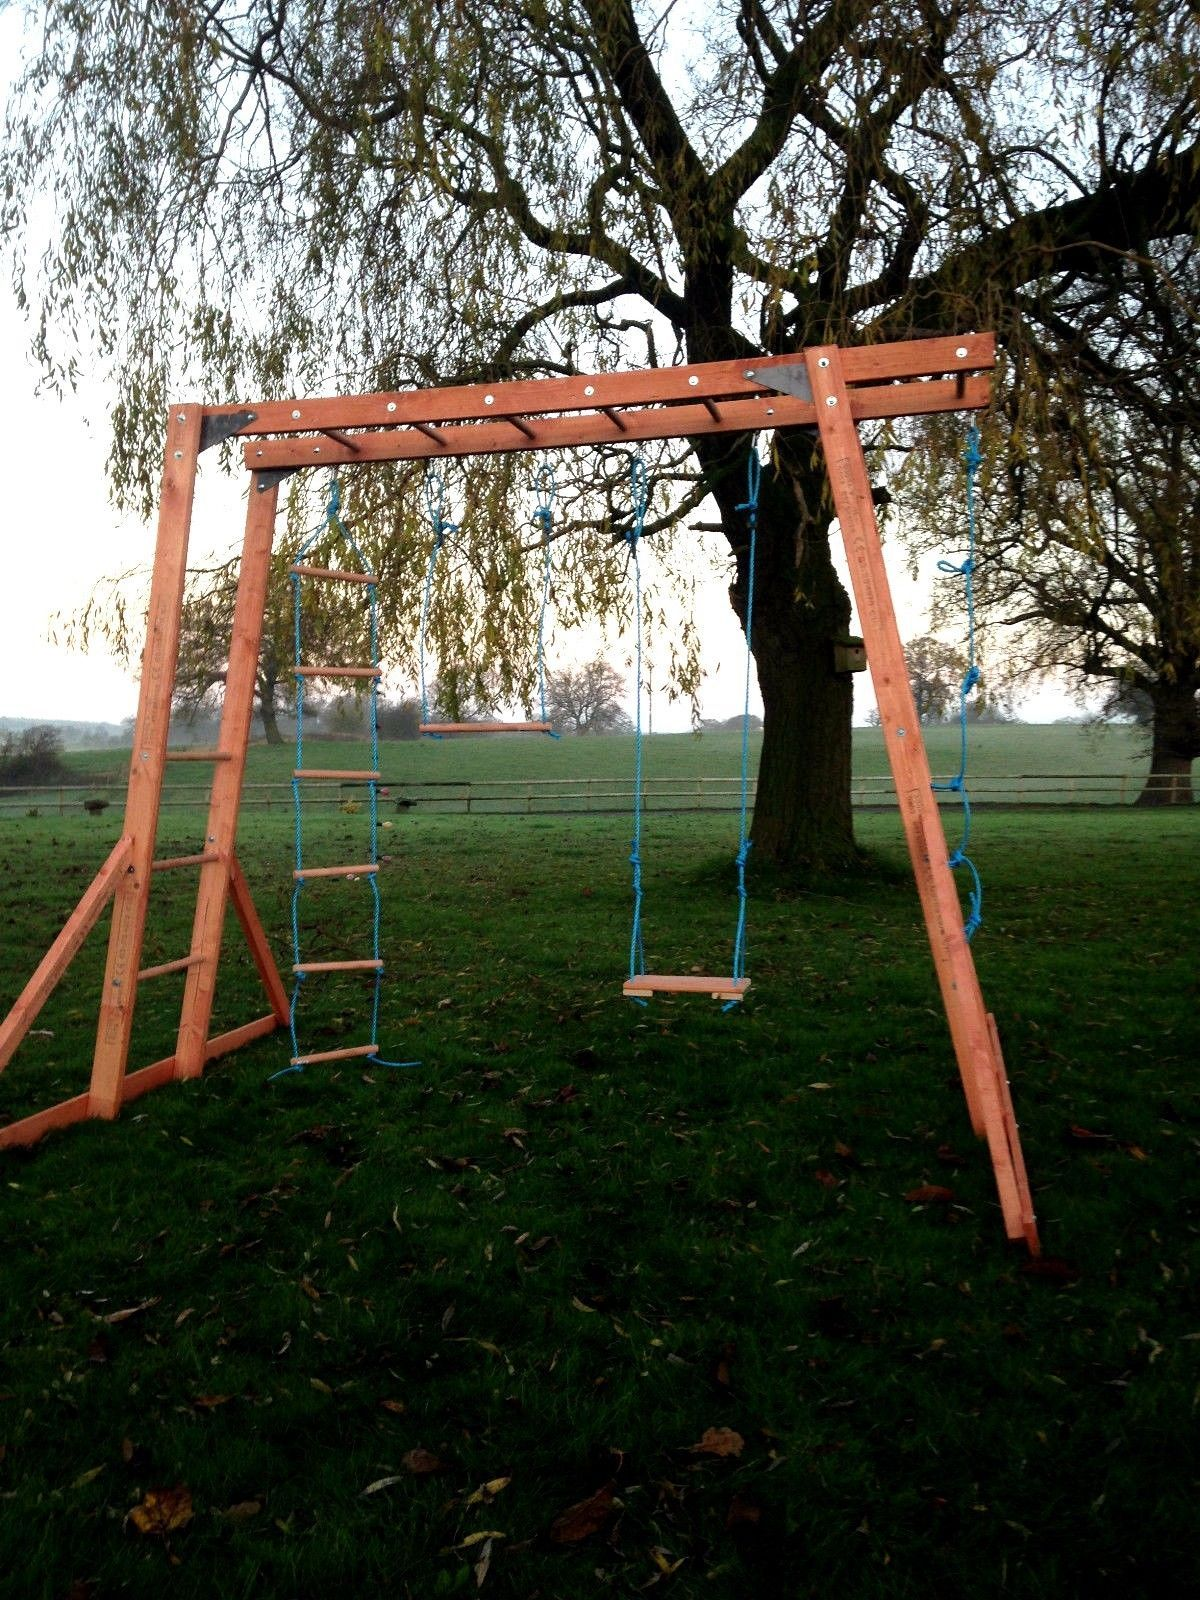 Sy Free Standing Monkey Bars Suitable For Domestic Use By Children Aged 3 15 Ebay